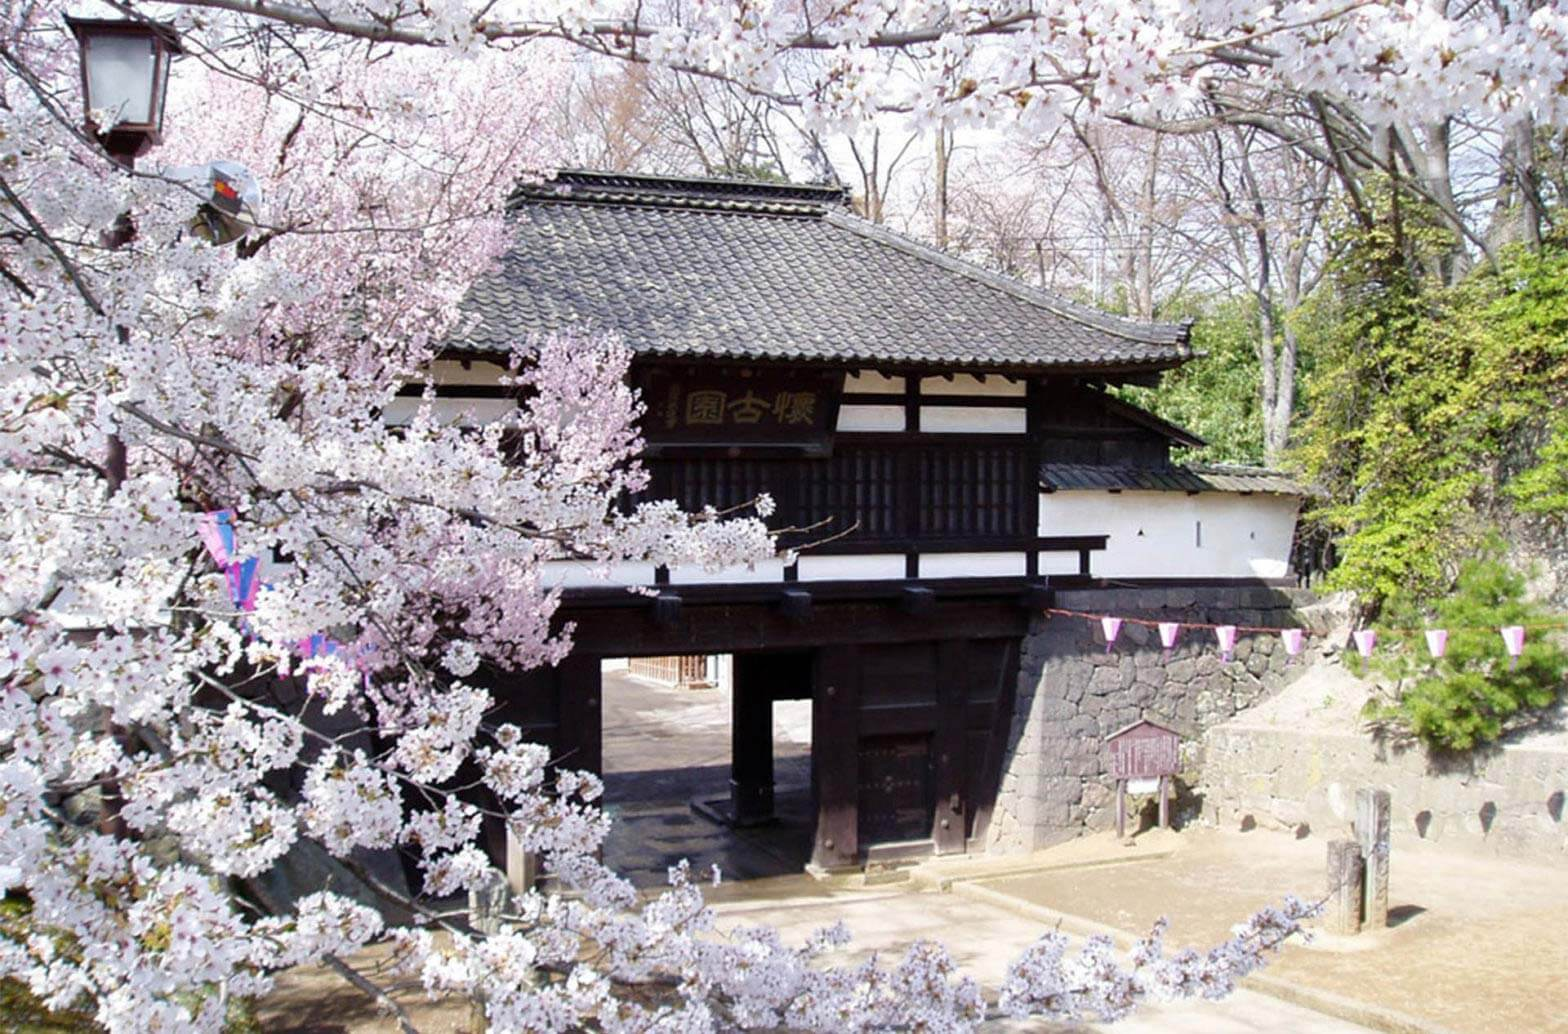 Local attraction: Cherry Blossom Festival at Ruins of Komoro Castle!